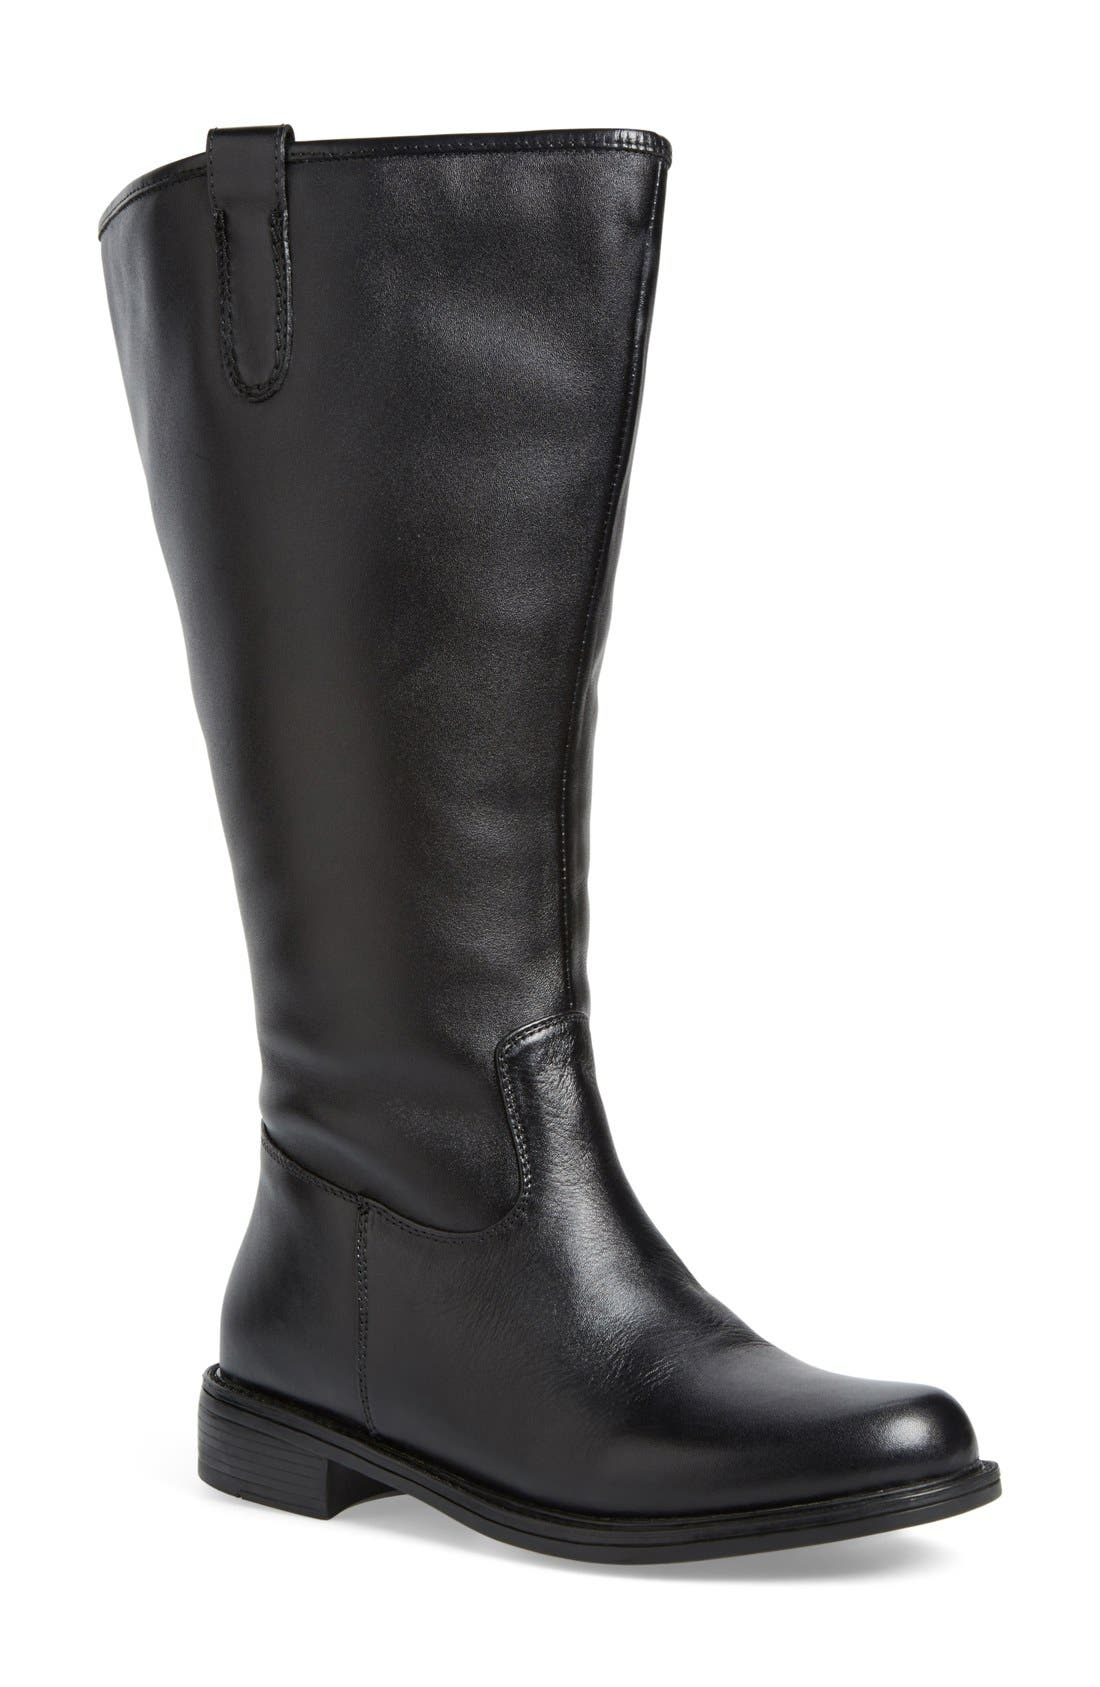 David Tate Best Calfskin Leather & Suede Boot W - Black